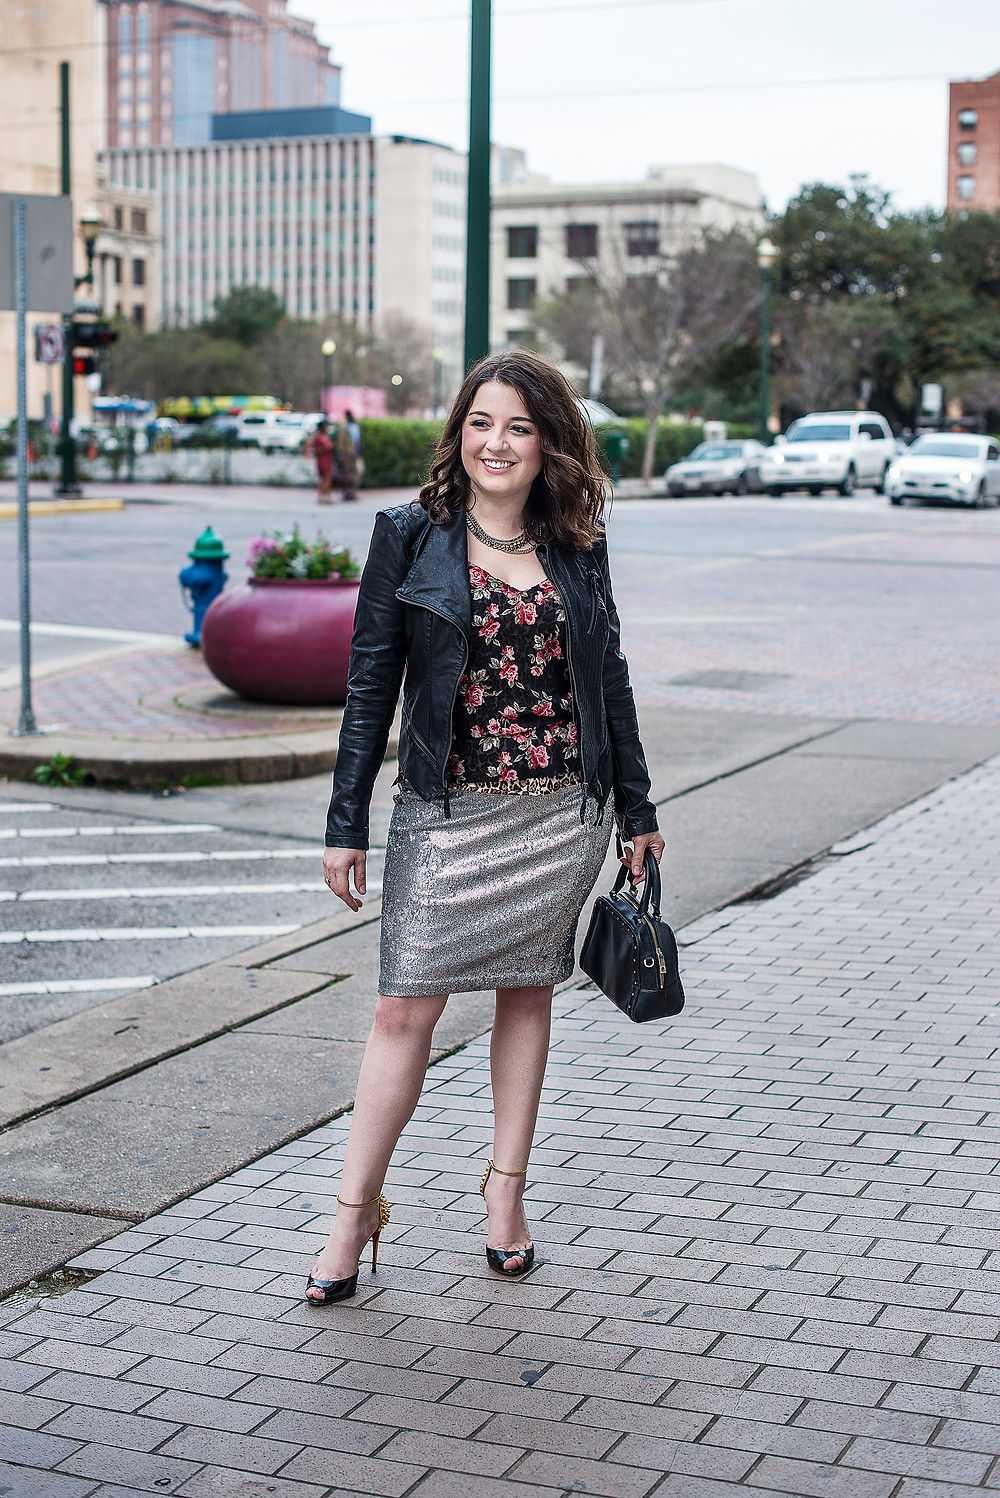 Personal Stylist in Dallas TX shares how to wear a sequin skirt